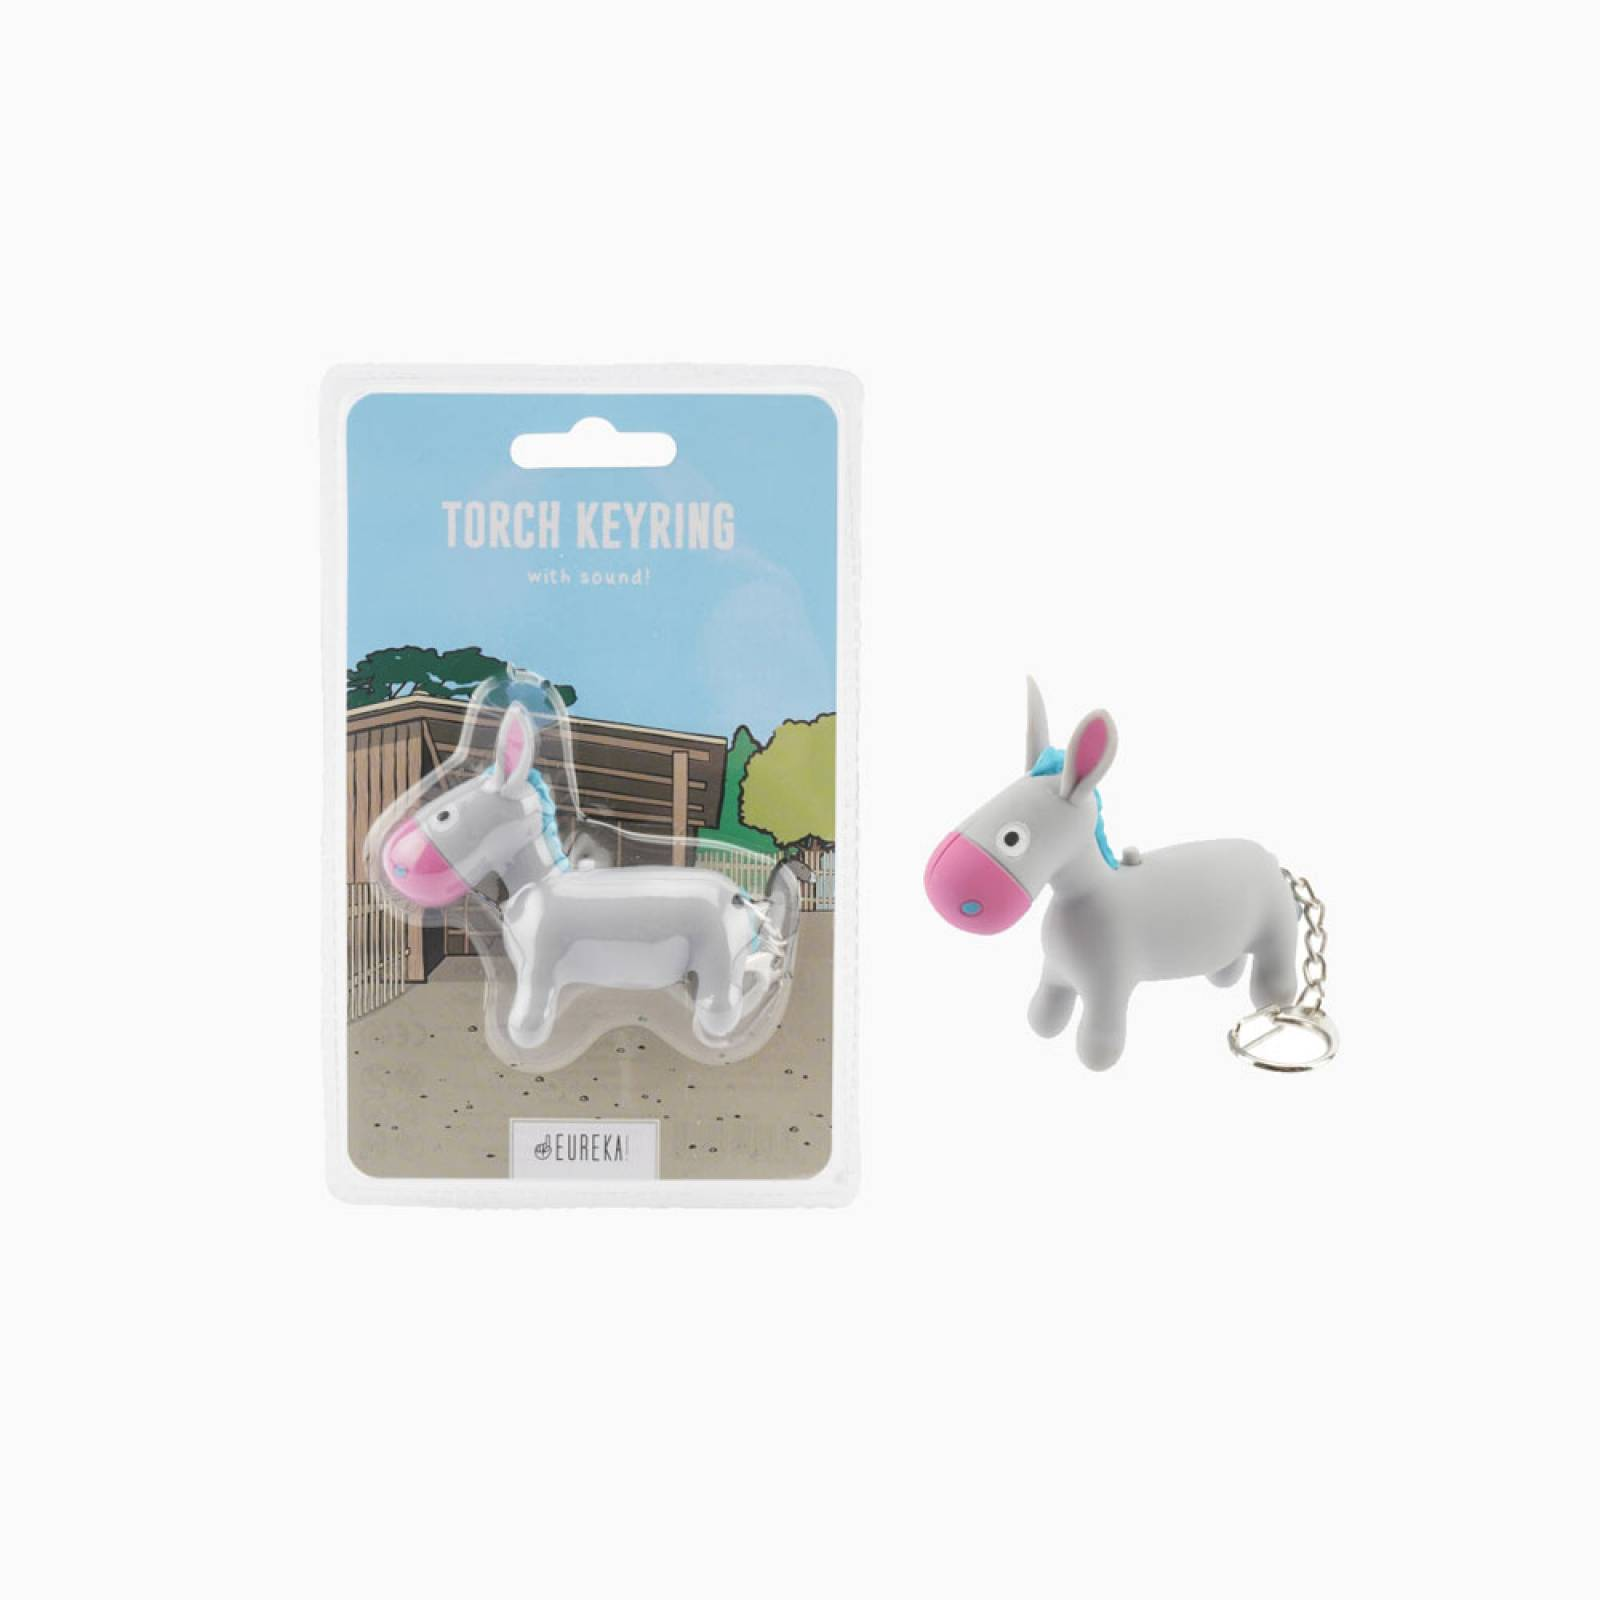 Donkey Keyring With Torch And Sound